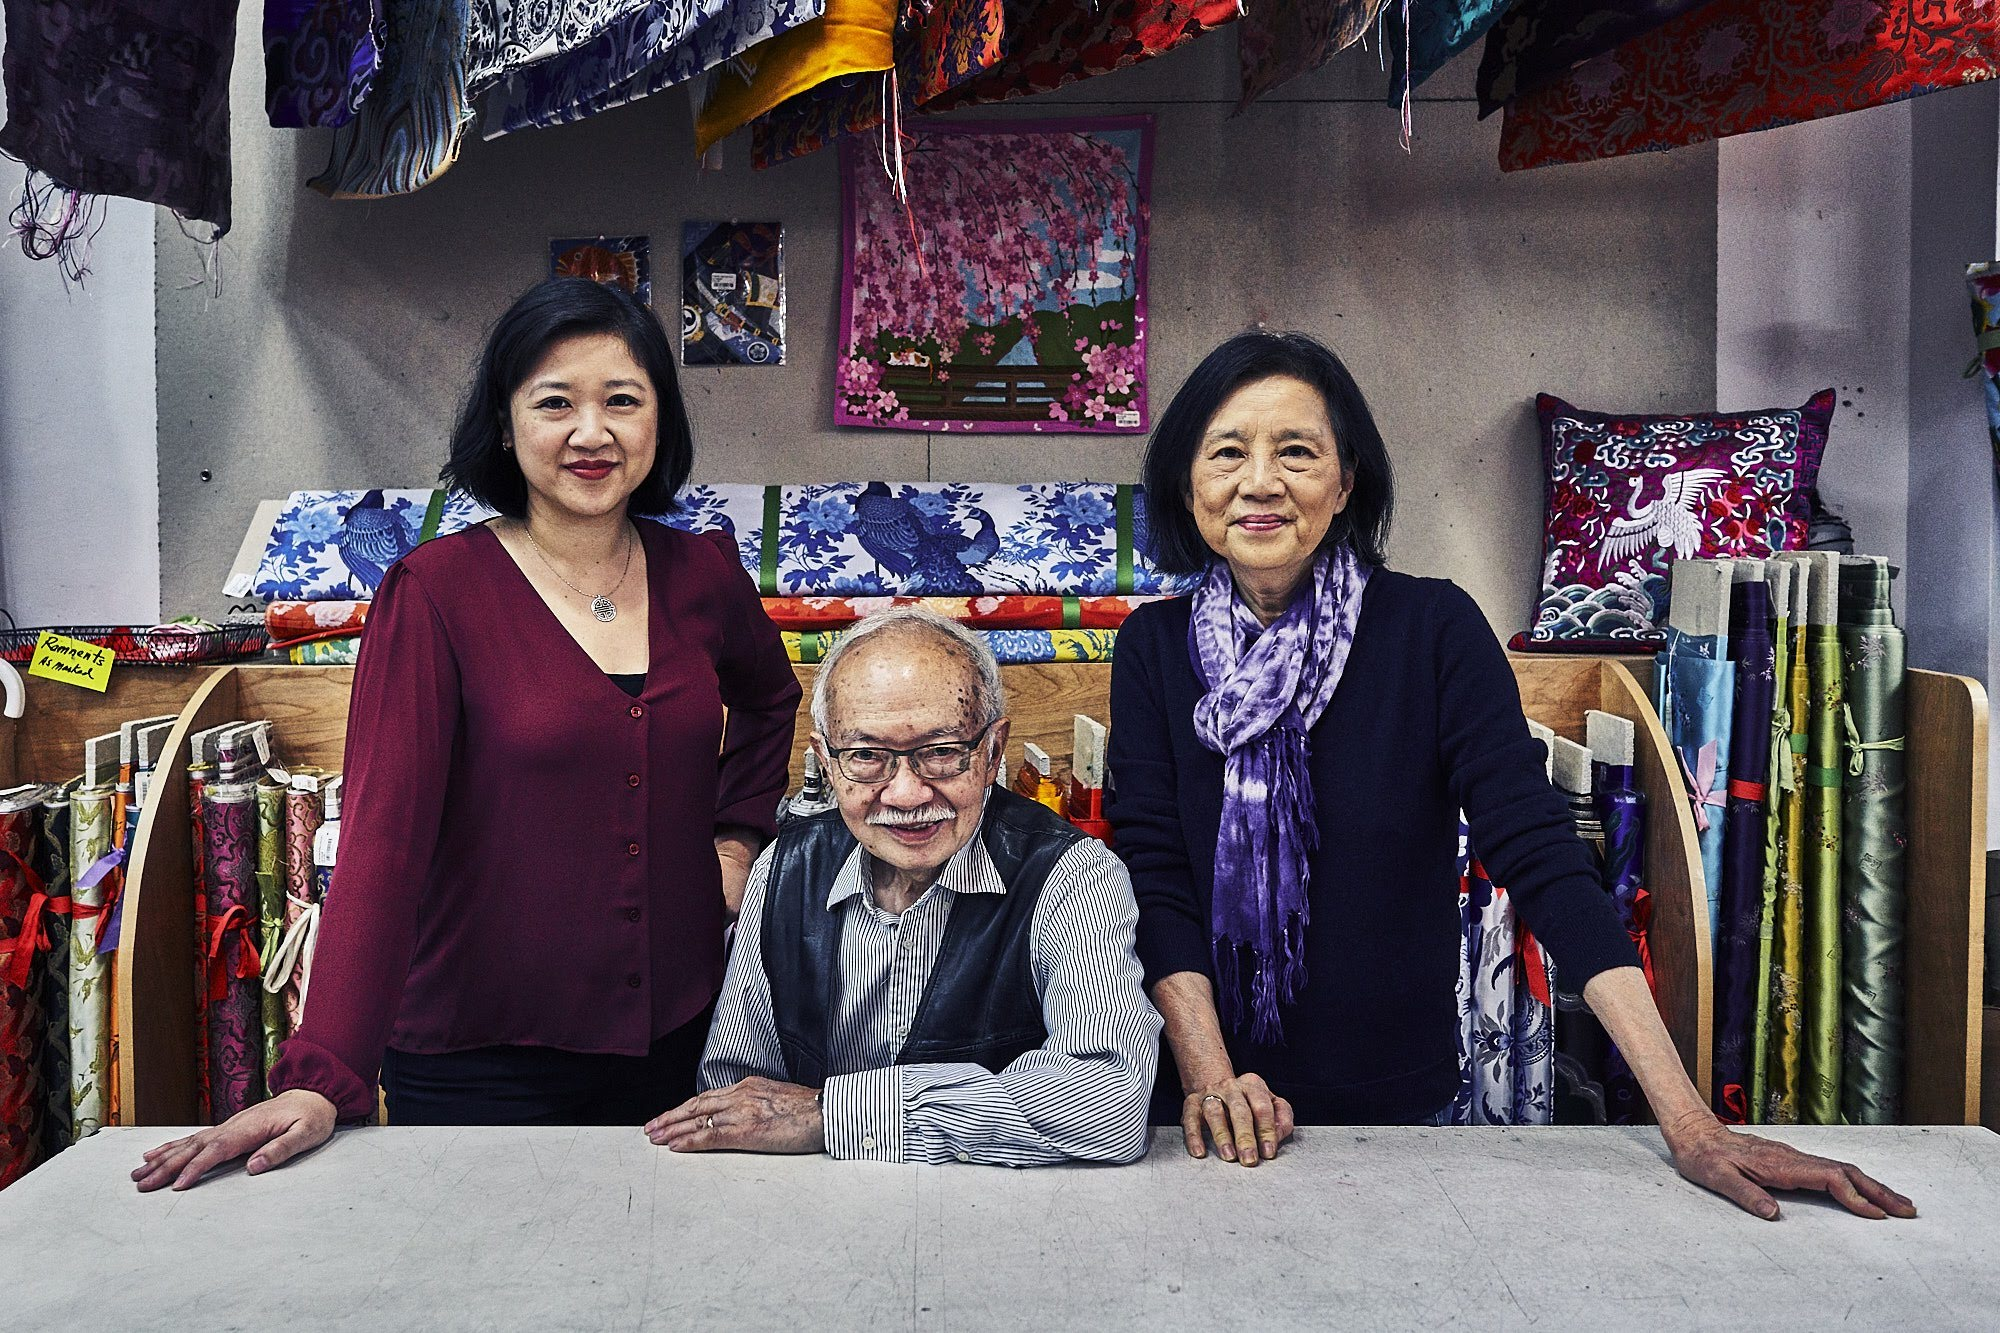 Pearl River founders Mr. and Mrs. Chen were ready to retire when their daughter-in-law, Joanne Kwong, offered to take over, refreshing the store with new products from up-and-coming designers and entrepreneurs and bringing it into the digital age while maintaining its colorful and welcoming atmosphere.